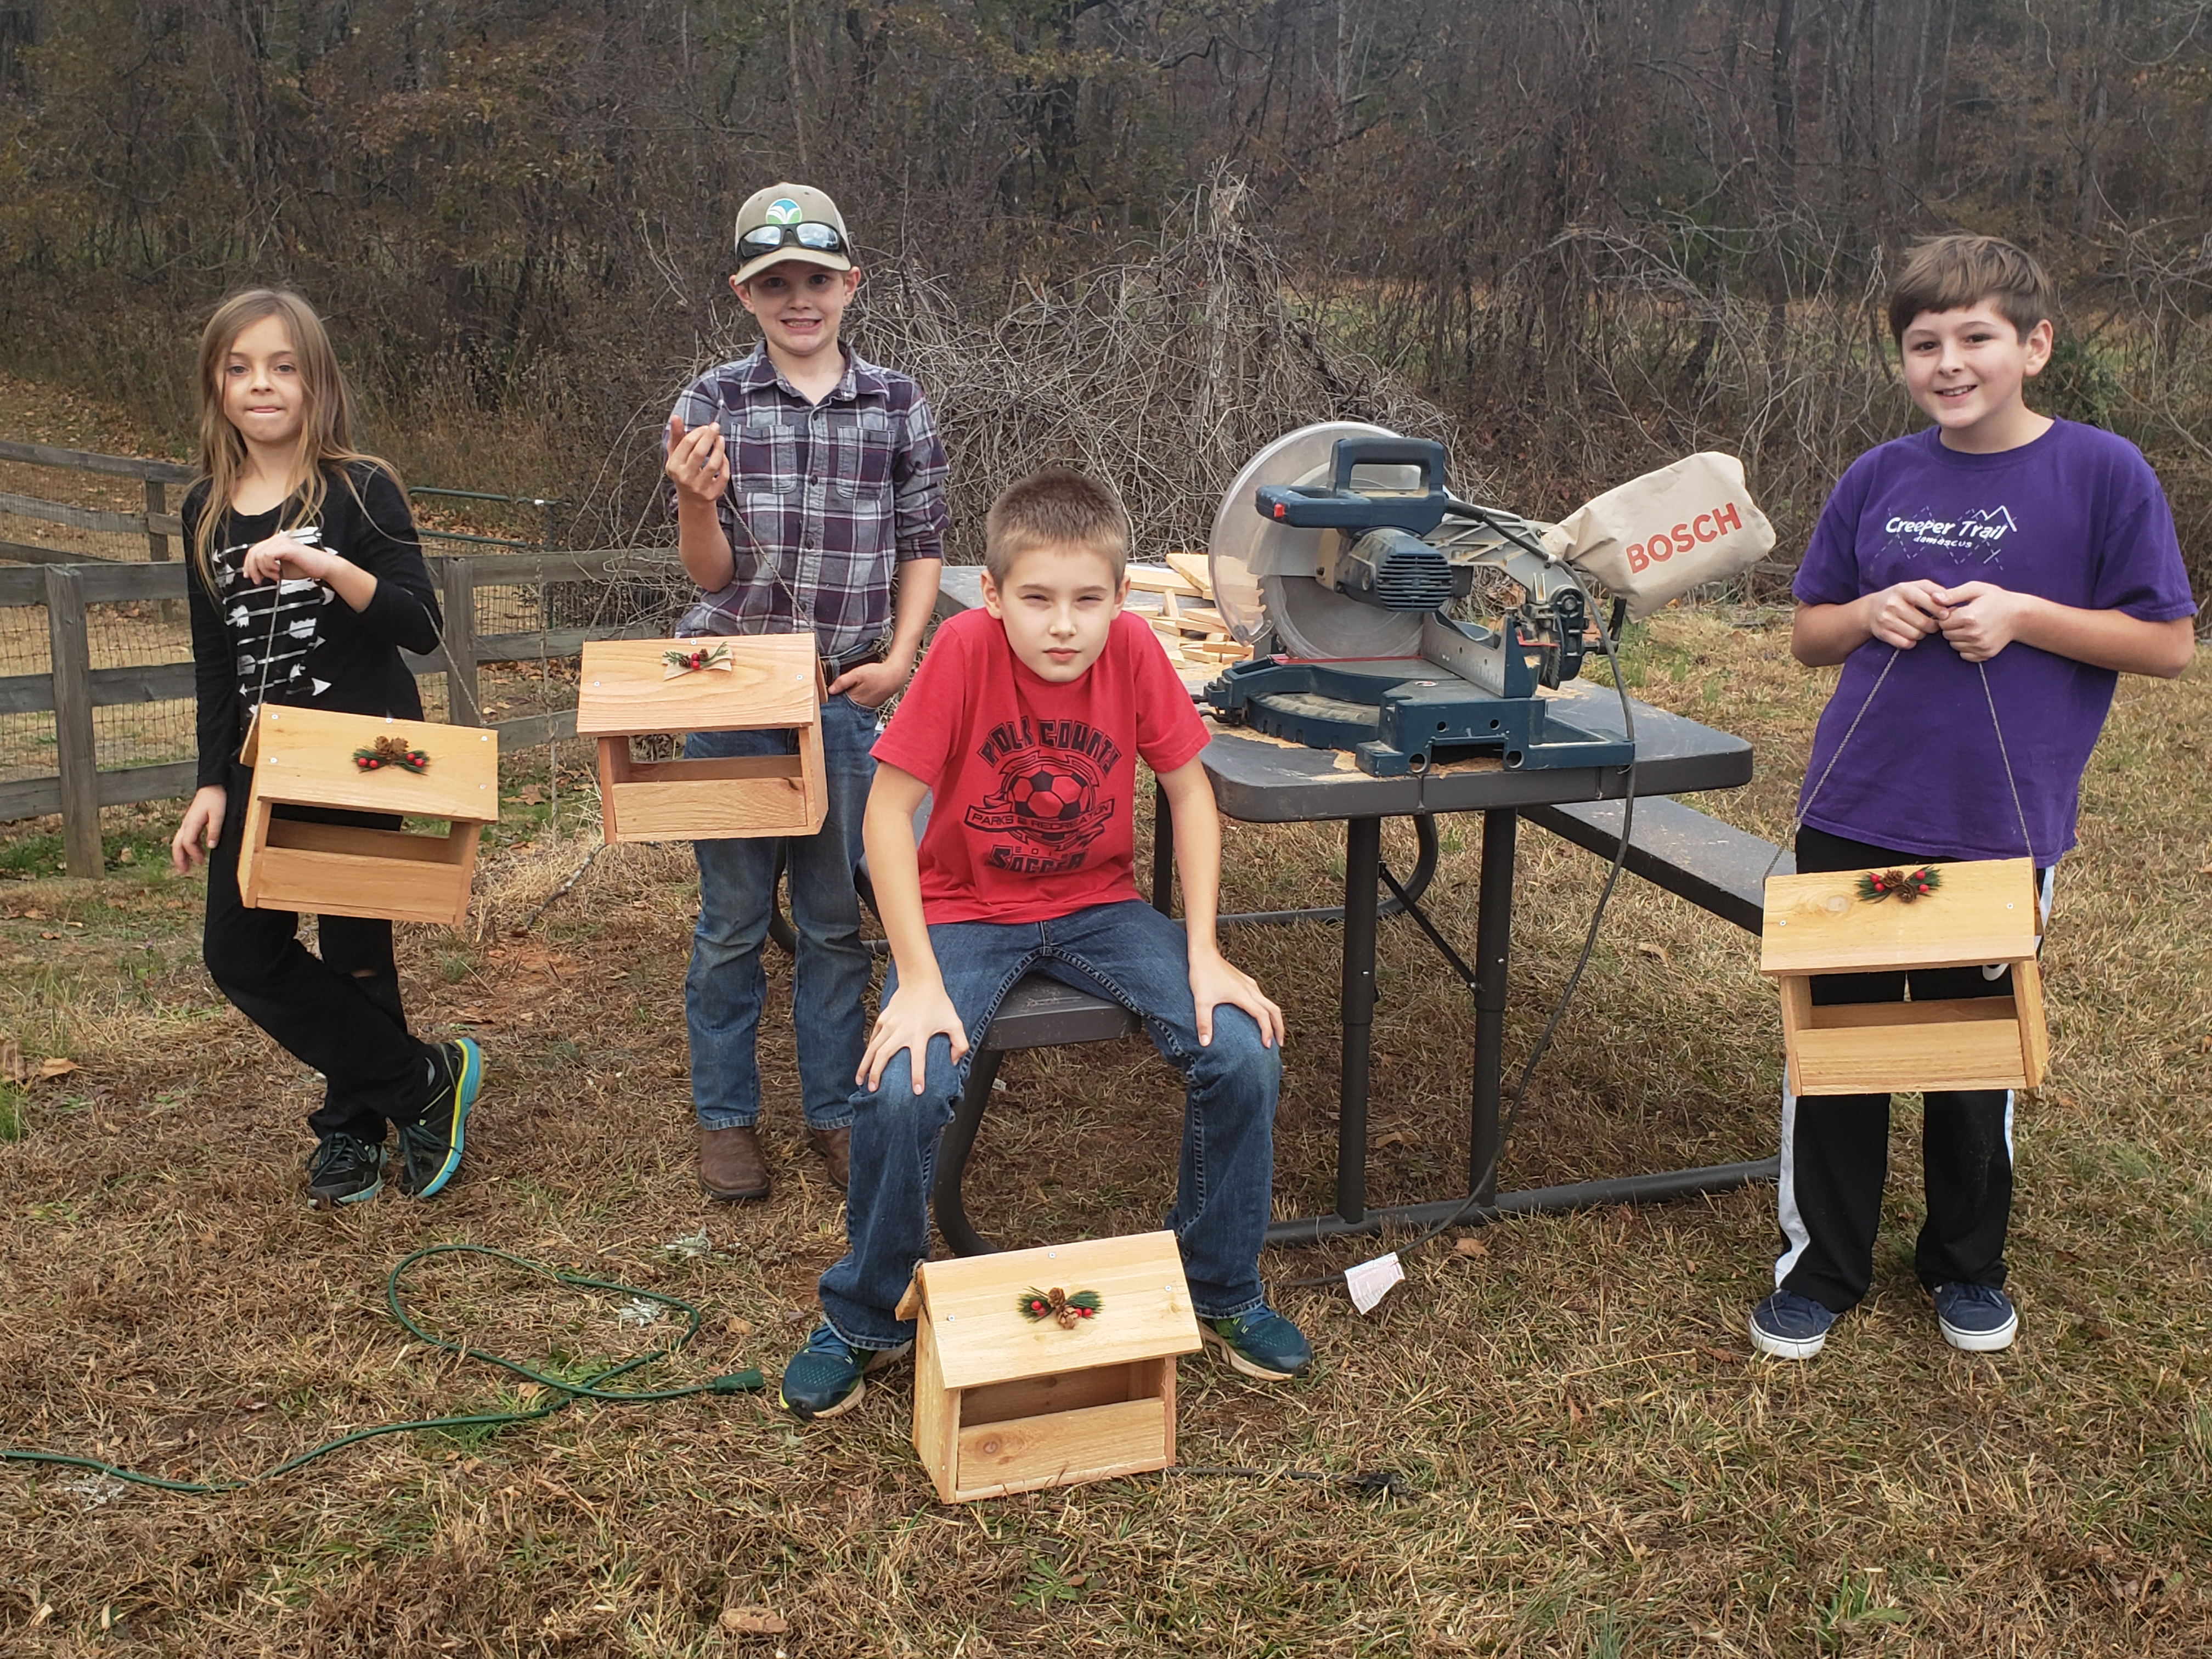 4-H Woodworking Club